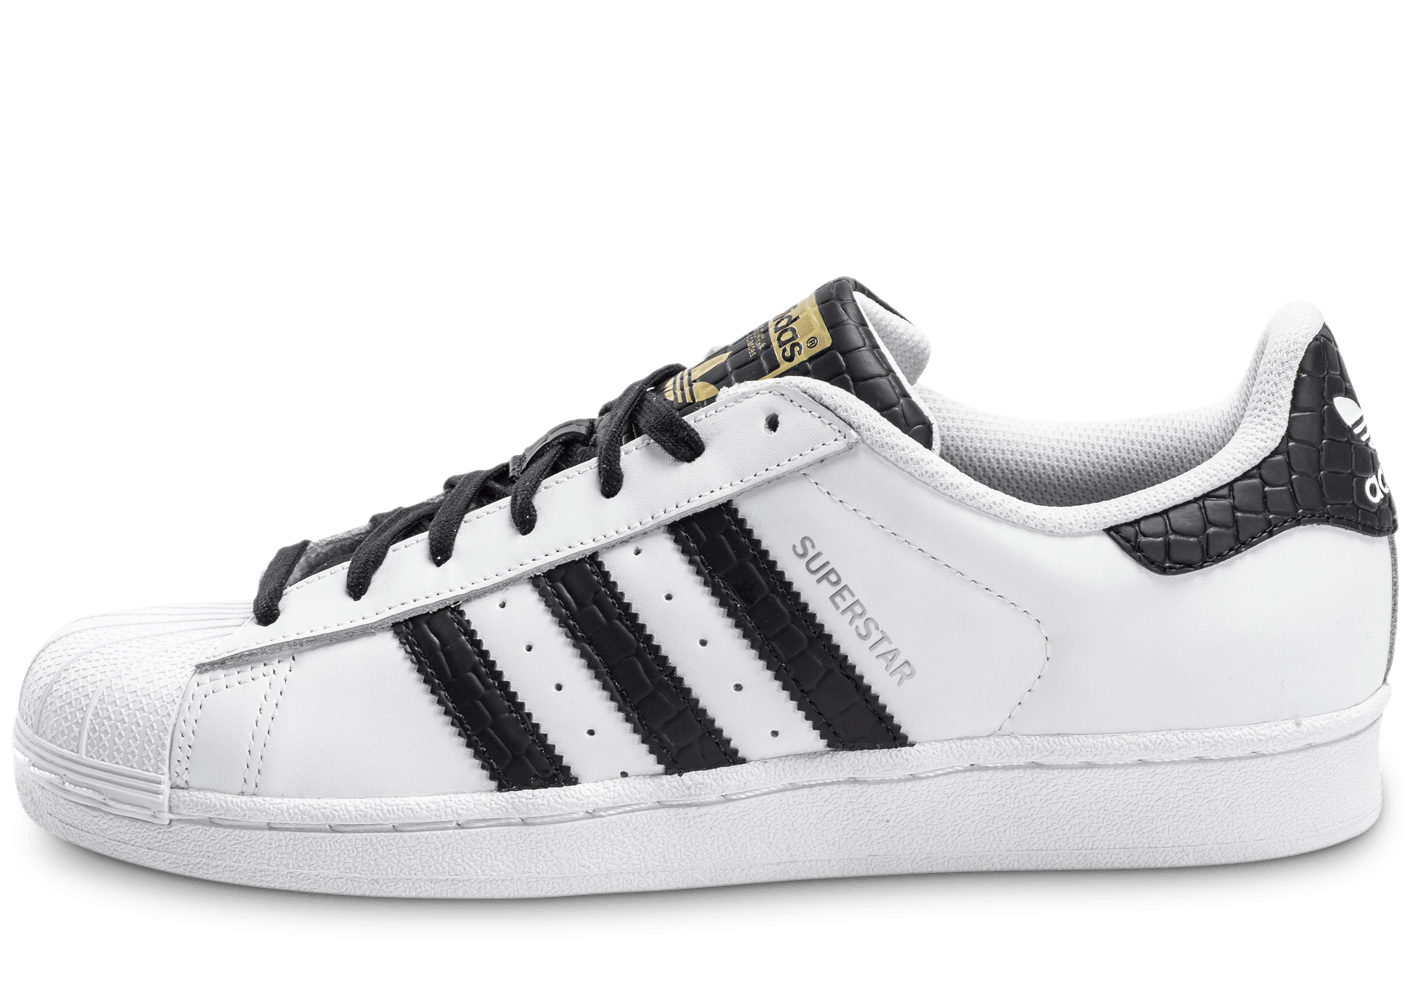 adidas superstar cuir blanche et noire chaussures homme chausport. Black Bedroom Furniture Sets. Home Design Ideas